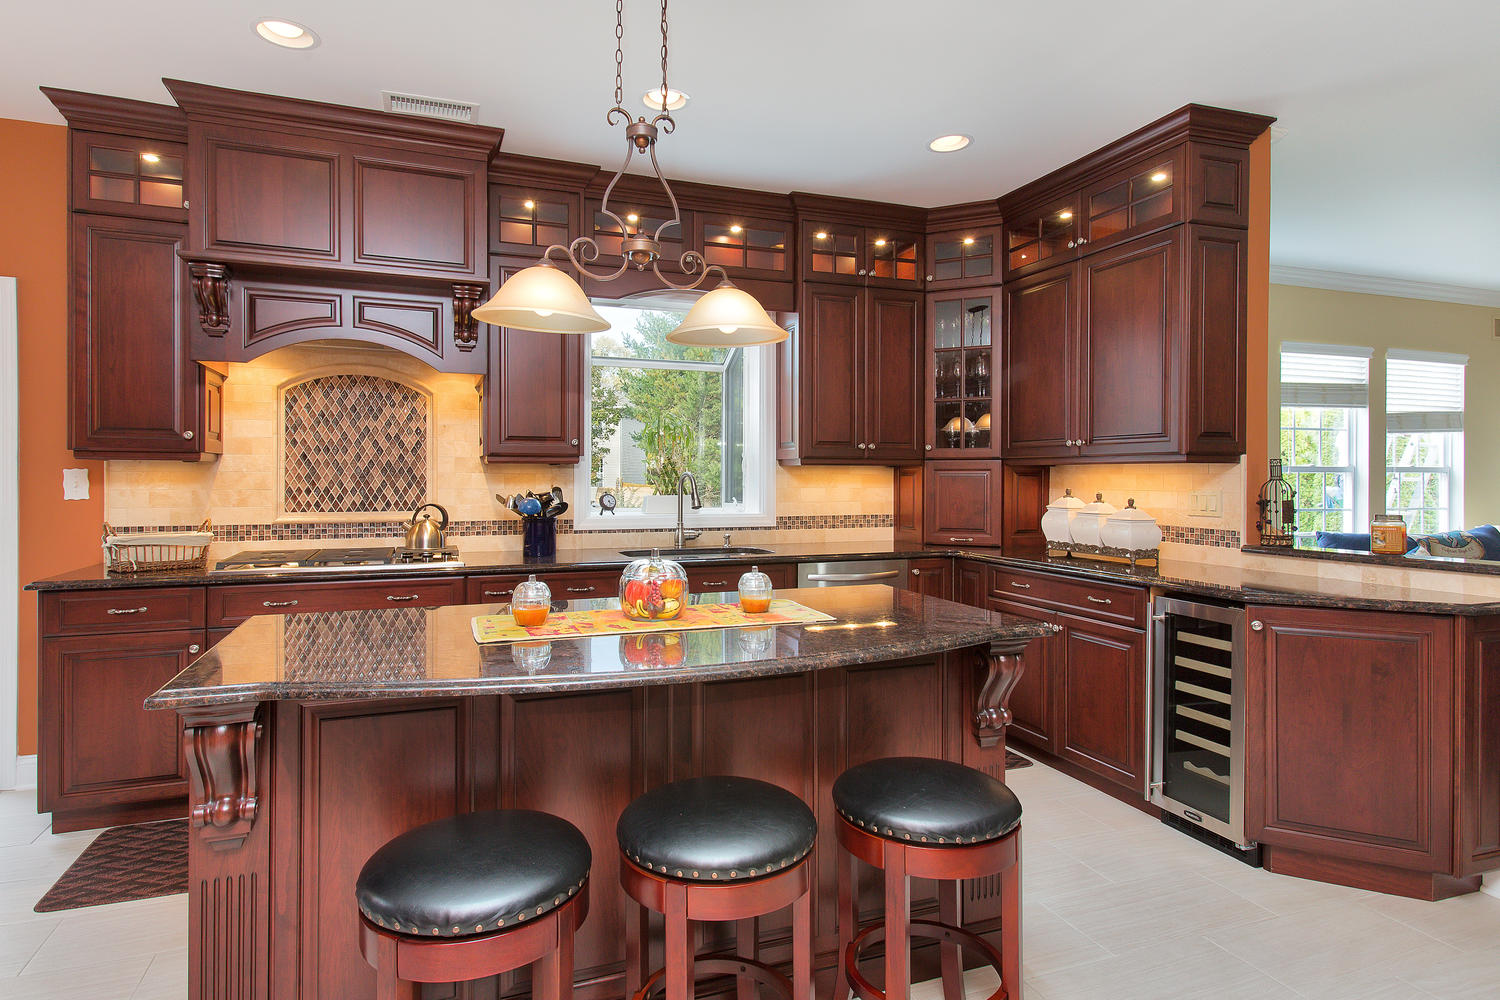 Dark Cherry Kitchen Perfection kitchen cabinets nj Stacked Glass Wall Cabinet Kitchen Design New Jersey